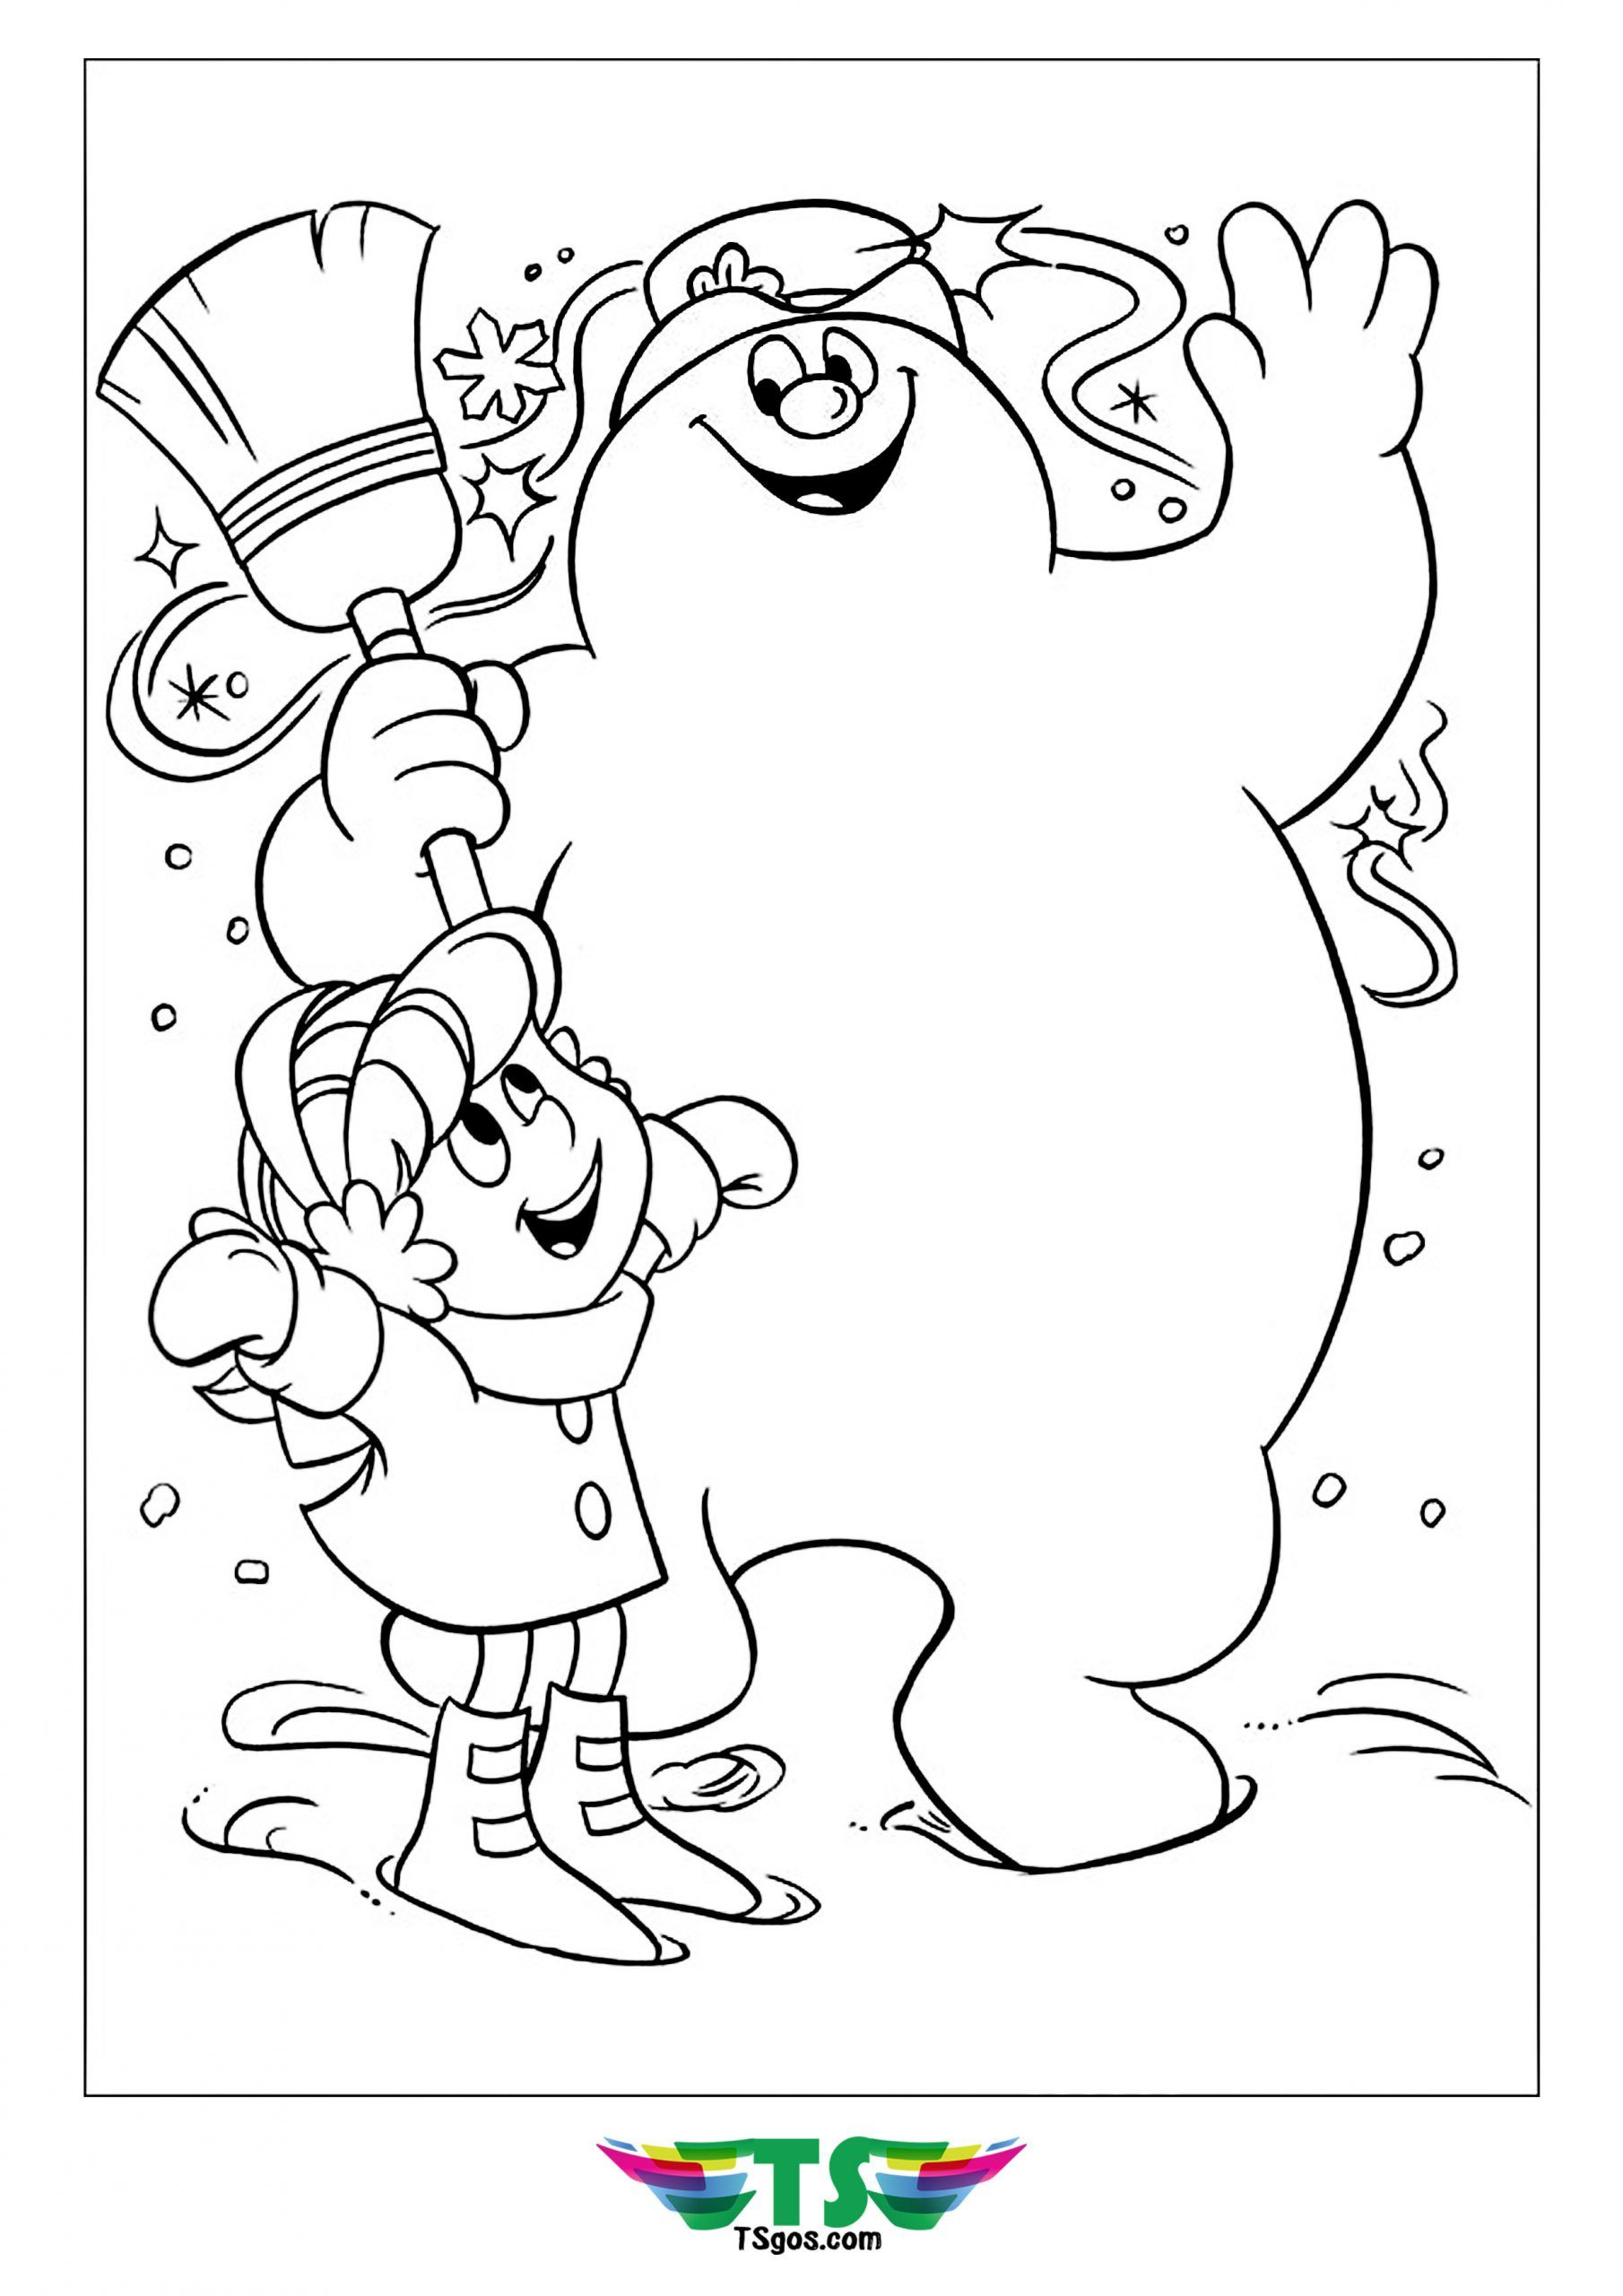 Play Color With Frosty The Snowman Coloring Page